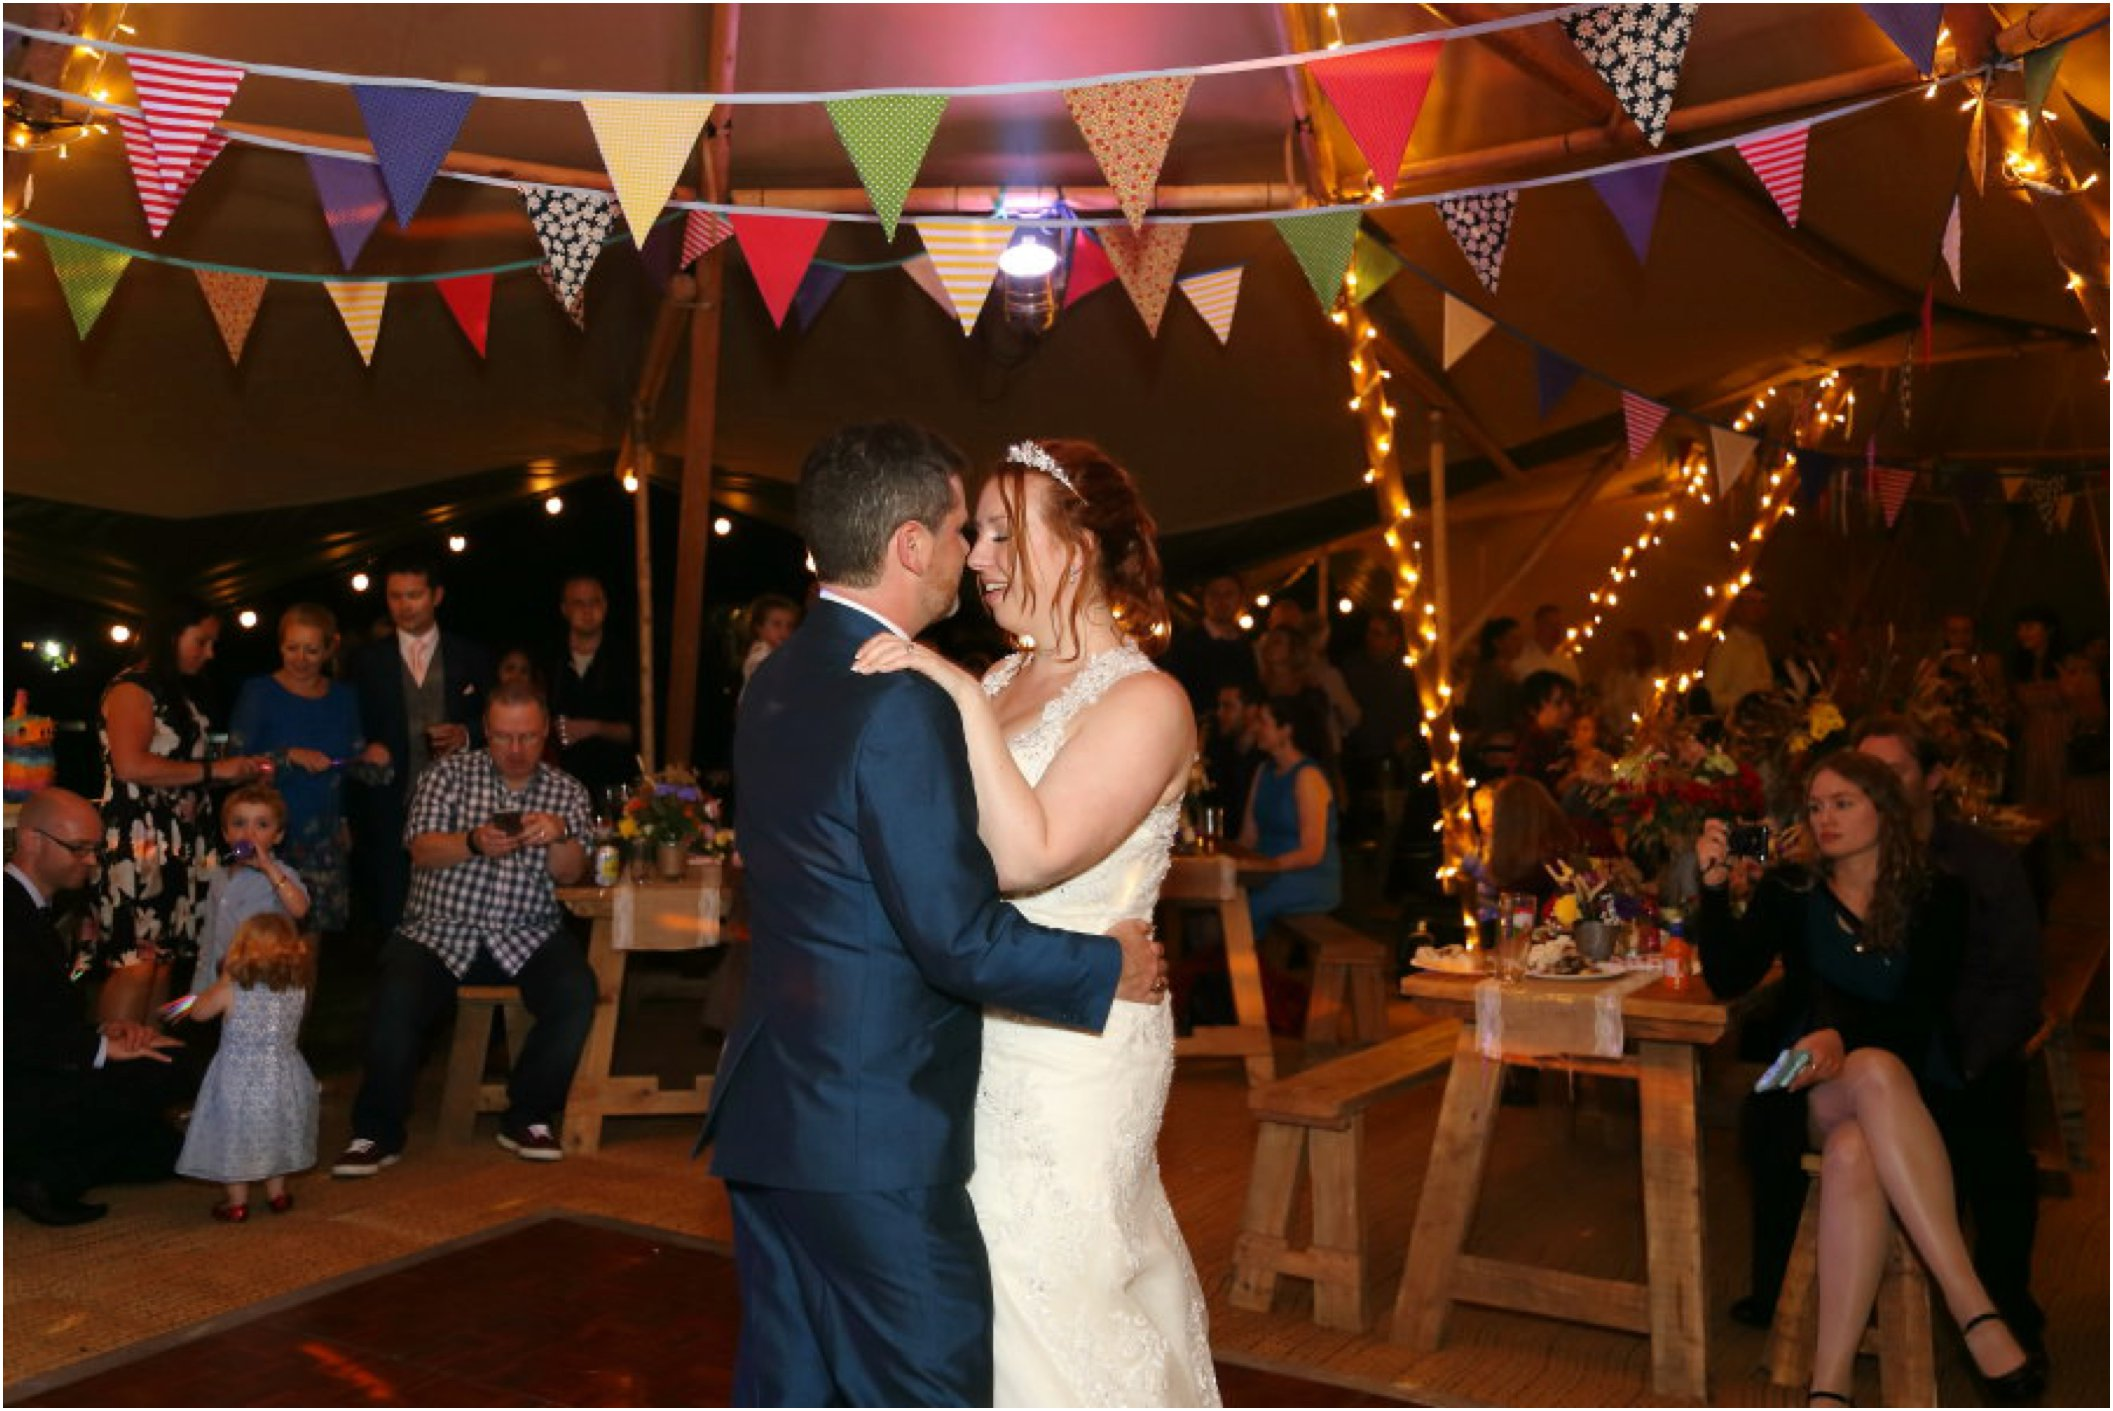 first dance at suffolk wedding, in tipi with bunting